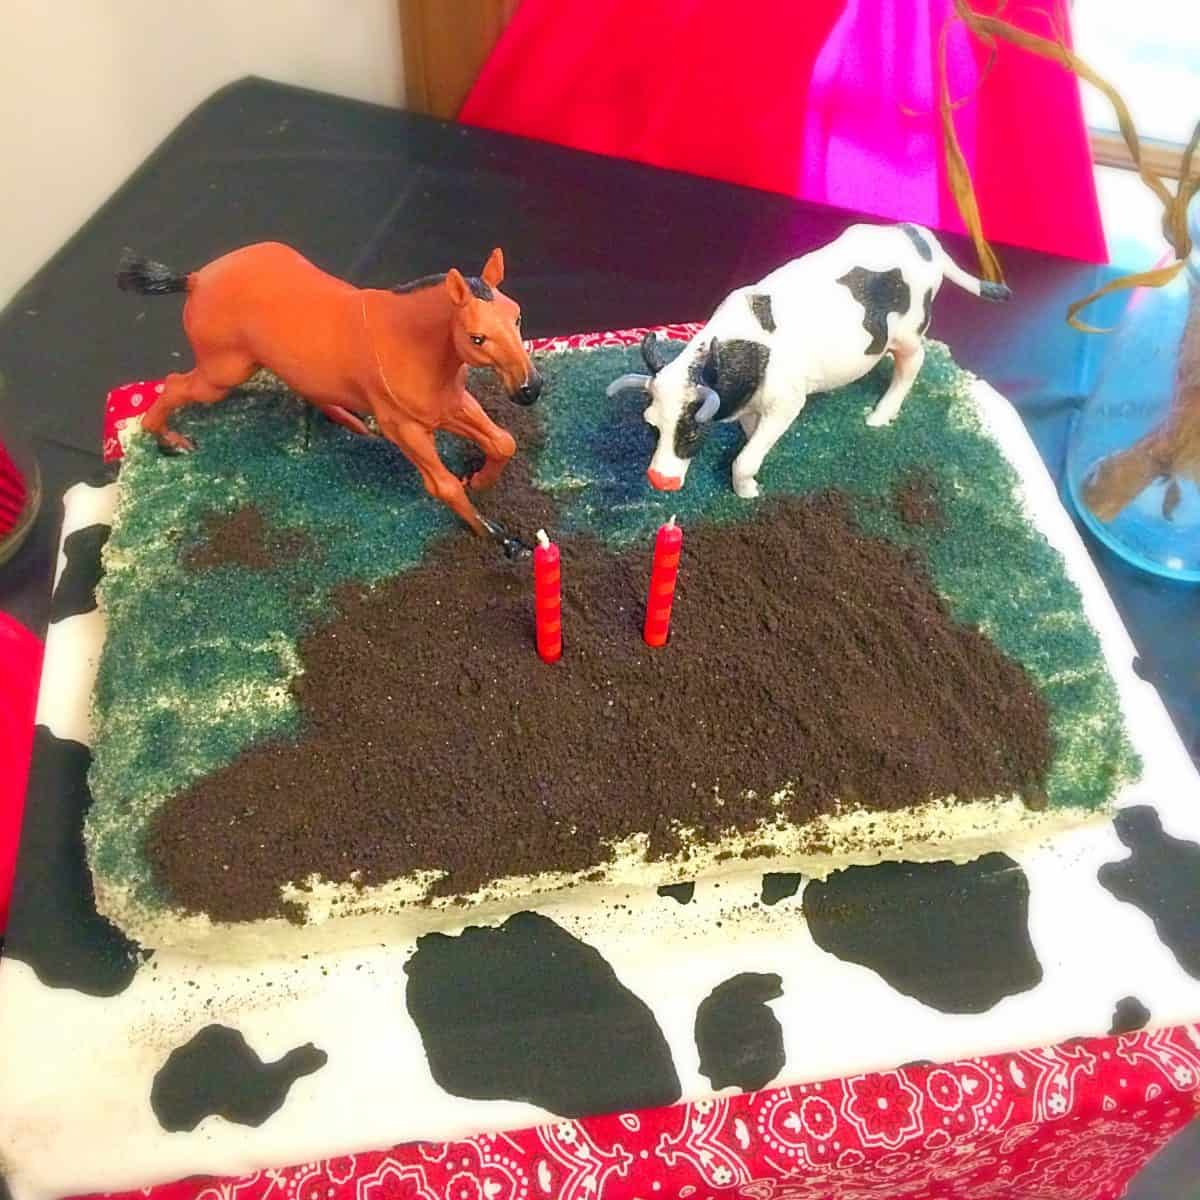 Farm Animal Birthday Party. Decoration ideas, farm food, activity, and fun drinks! Cake